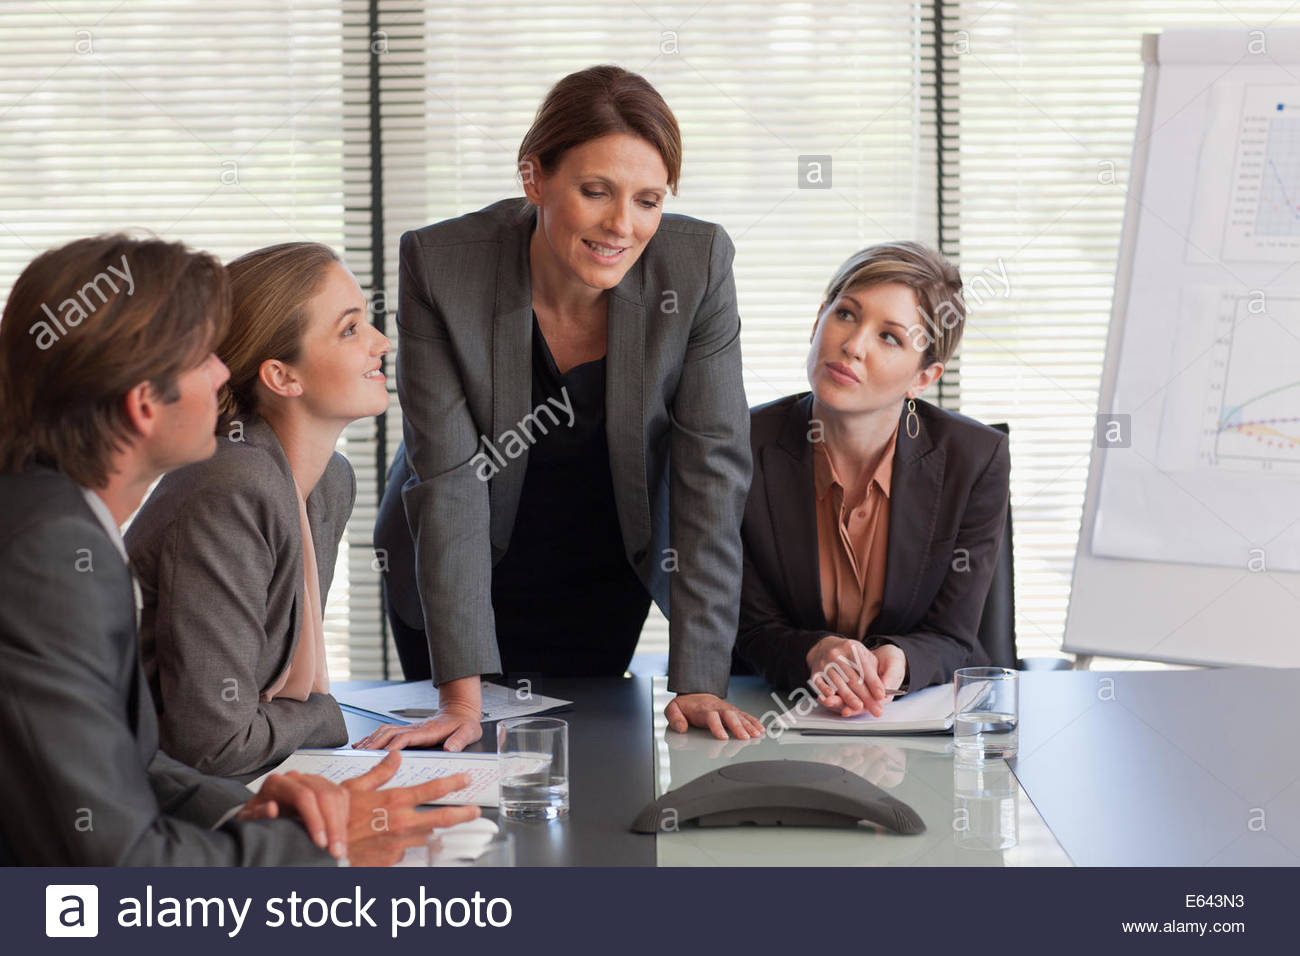 Business people on conference call - Stock Image